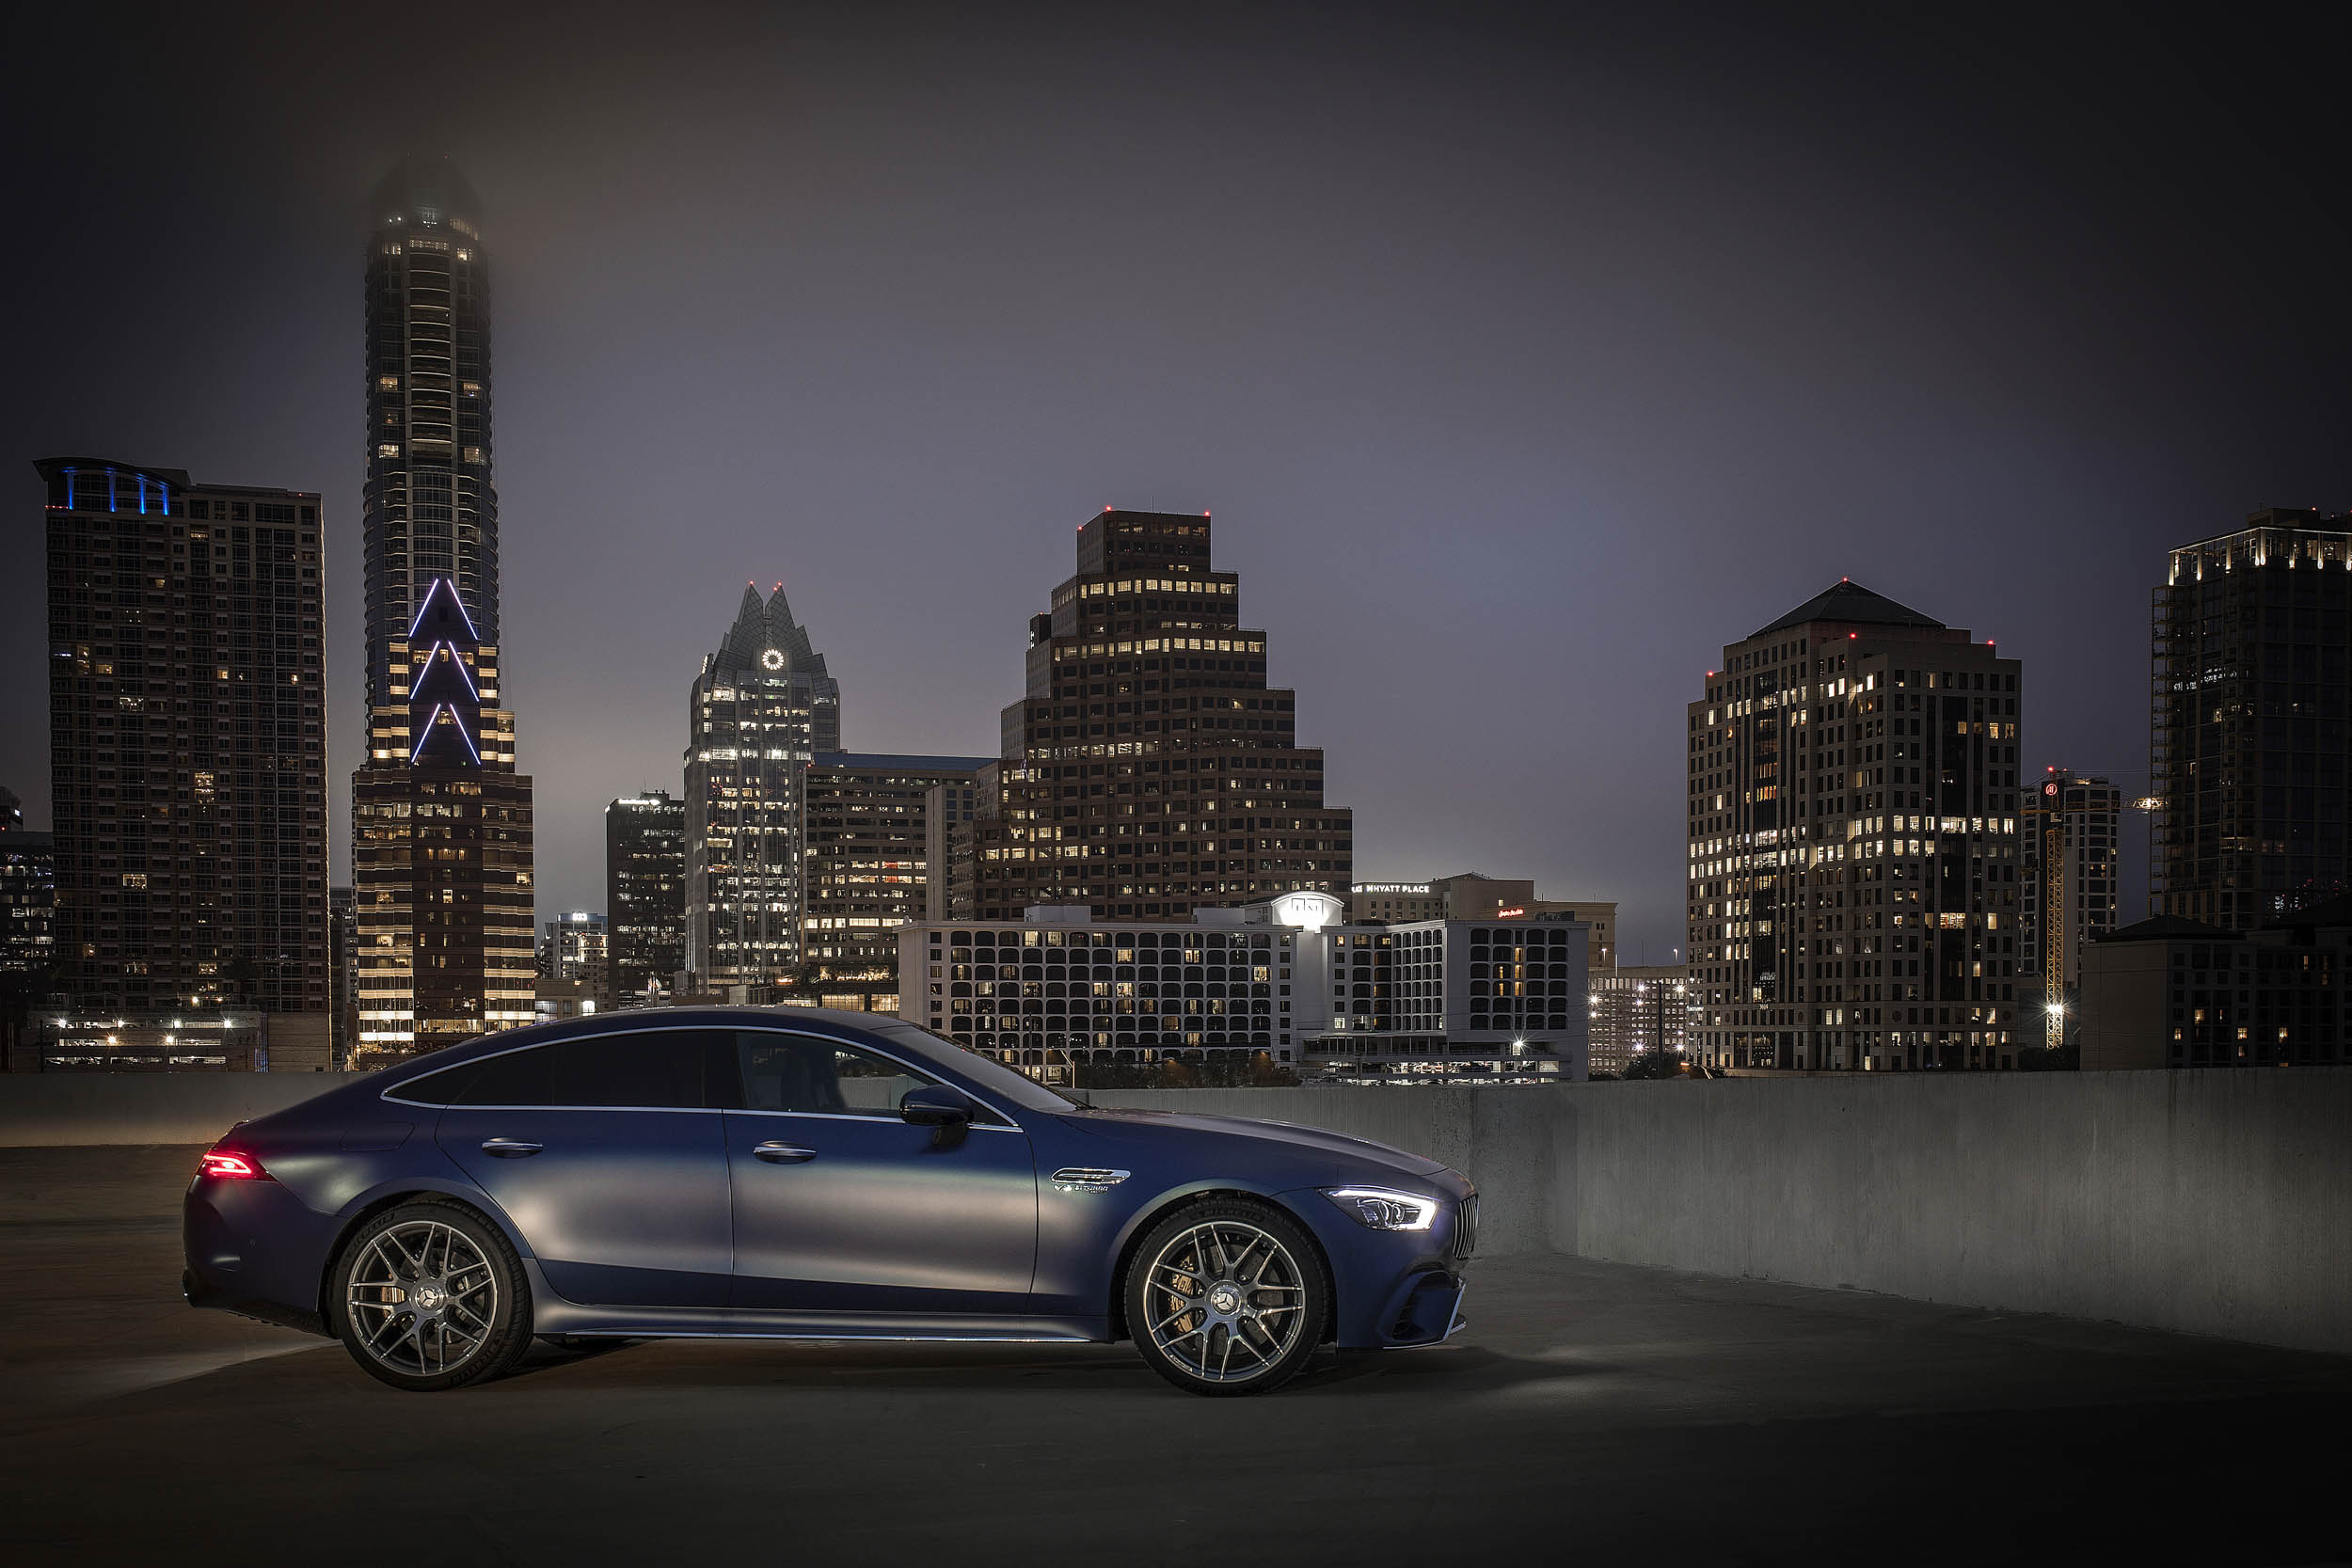 Blue Mercedes-AMG GT 63 S profile with a skyline